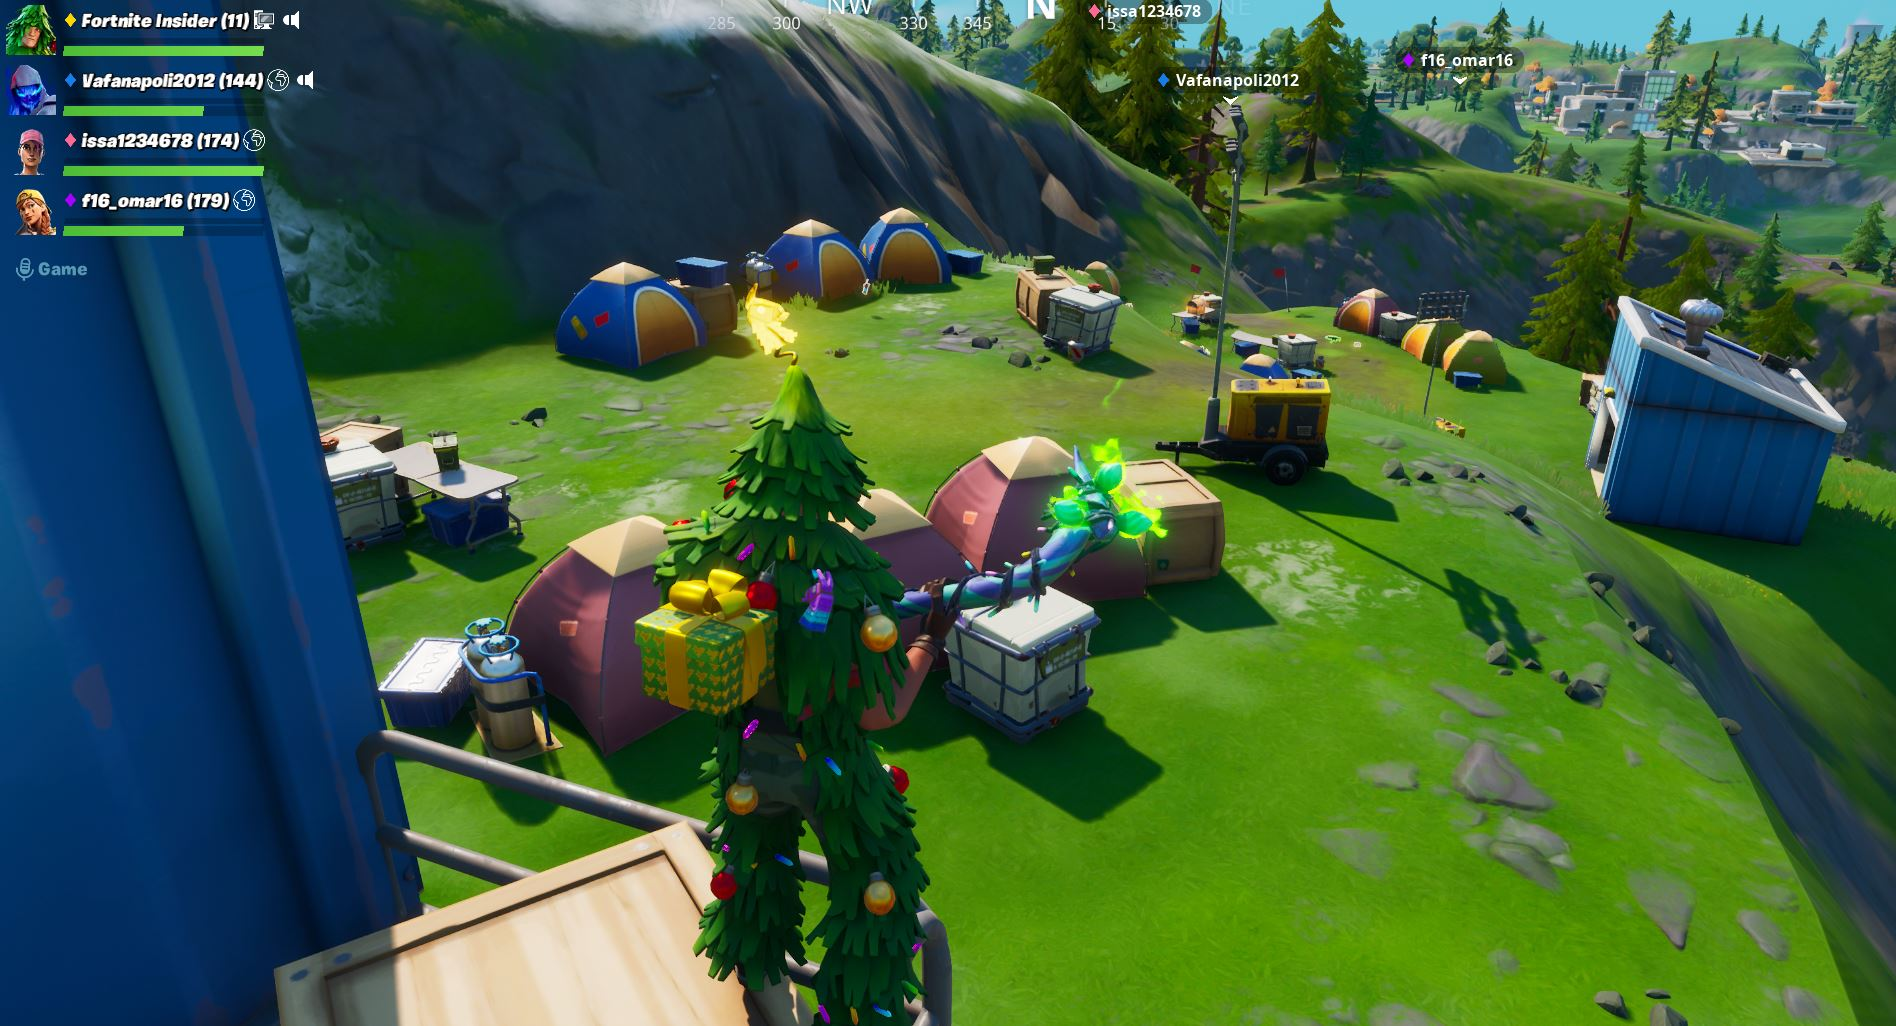 Fortnite mountain base camps